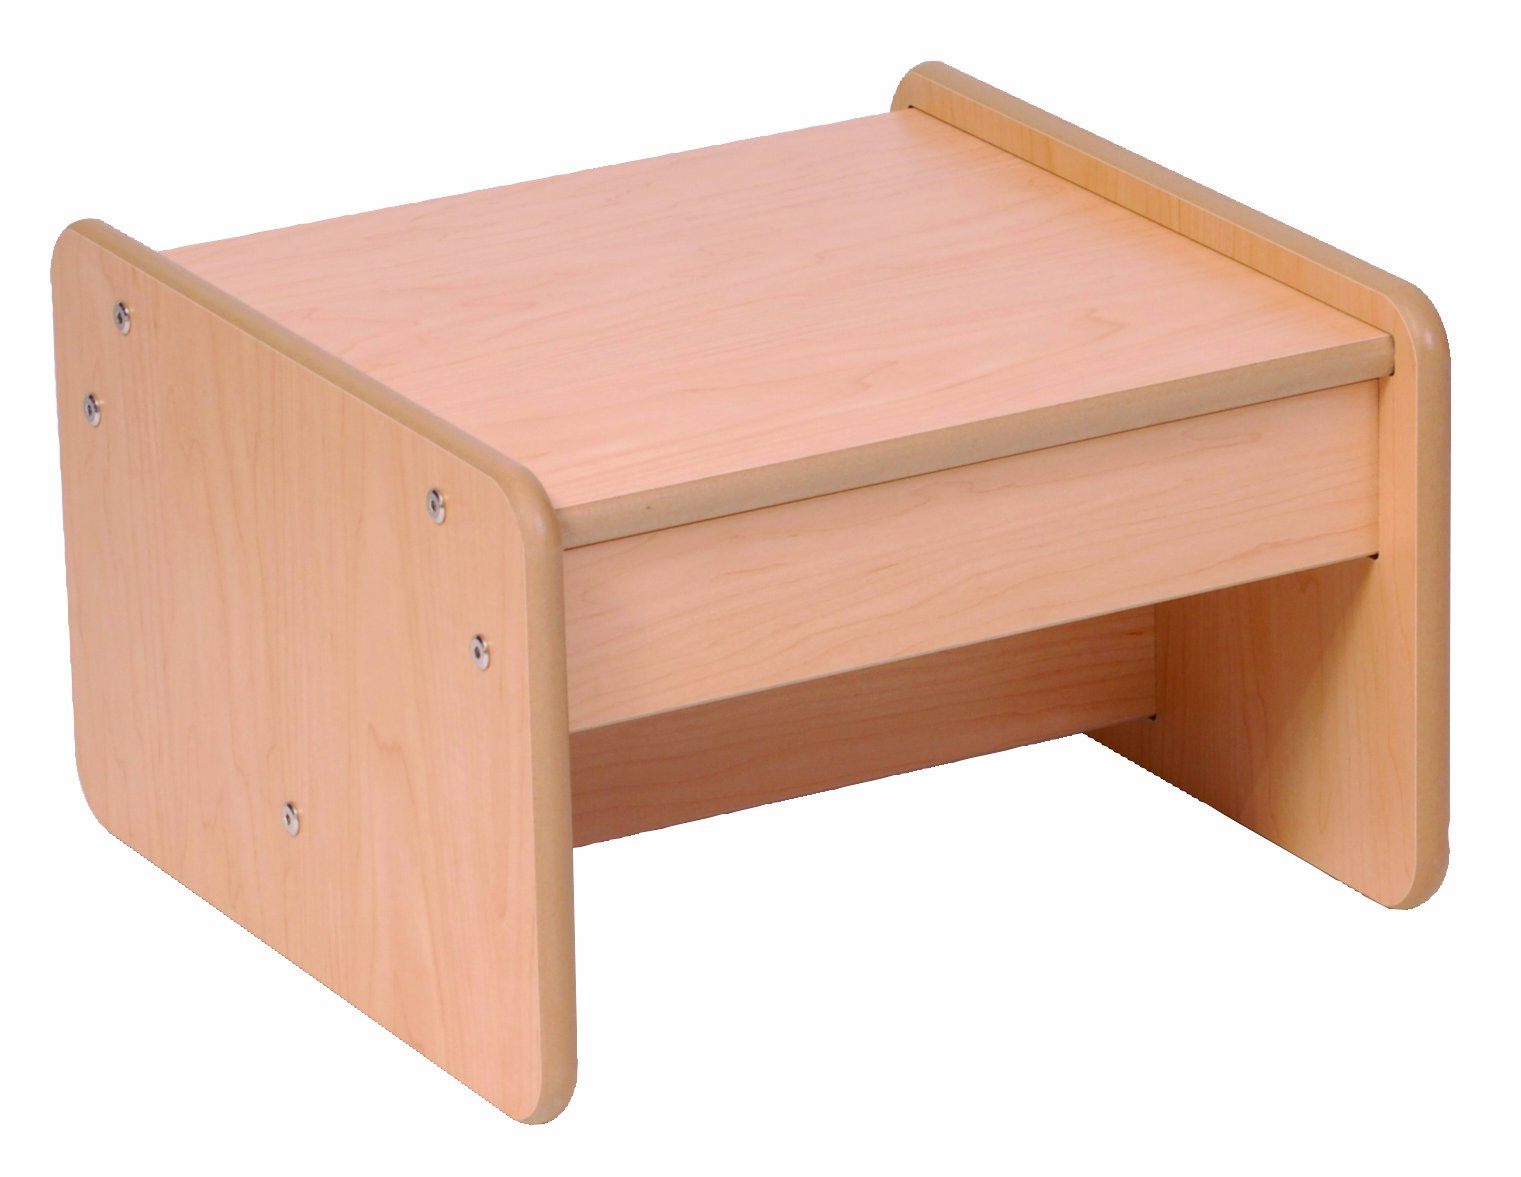 Steffy Wood Products Small End Table